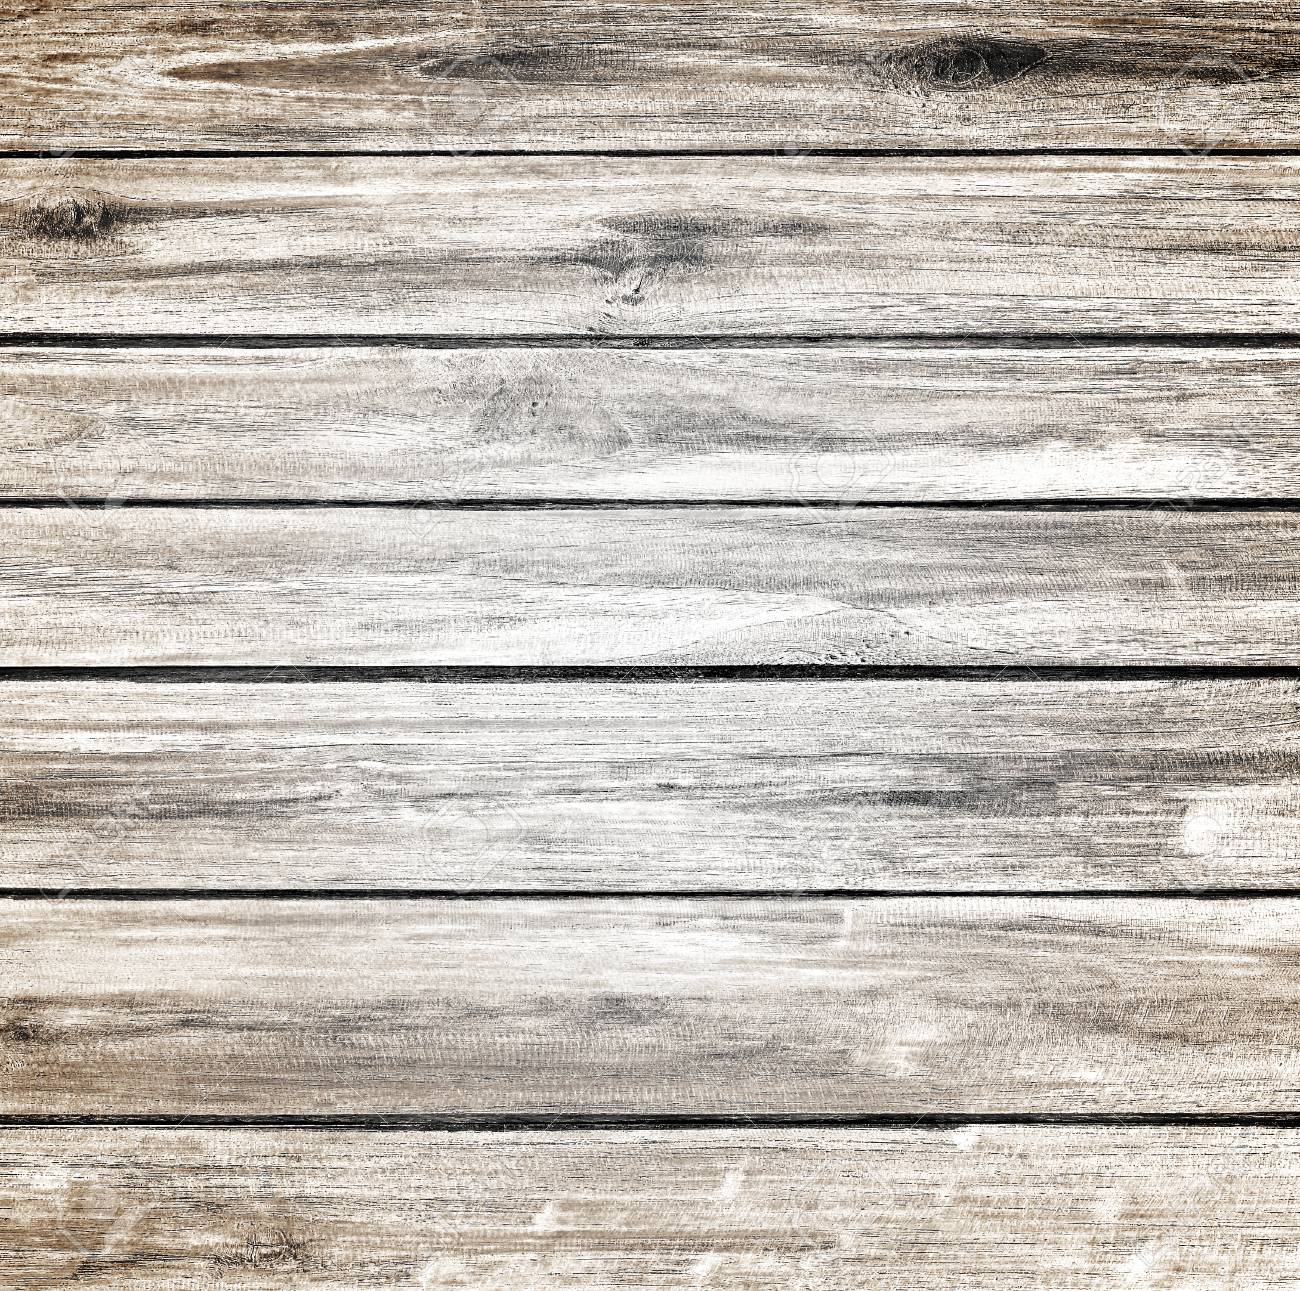 Rustic Weathered Barn Wood Background With Knots And Nail Holes Stock Photo    53081826